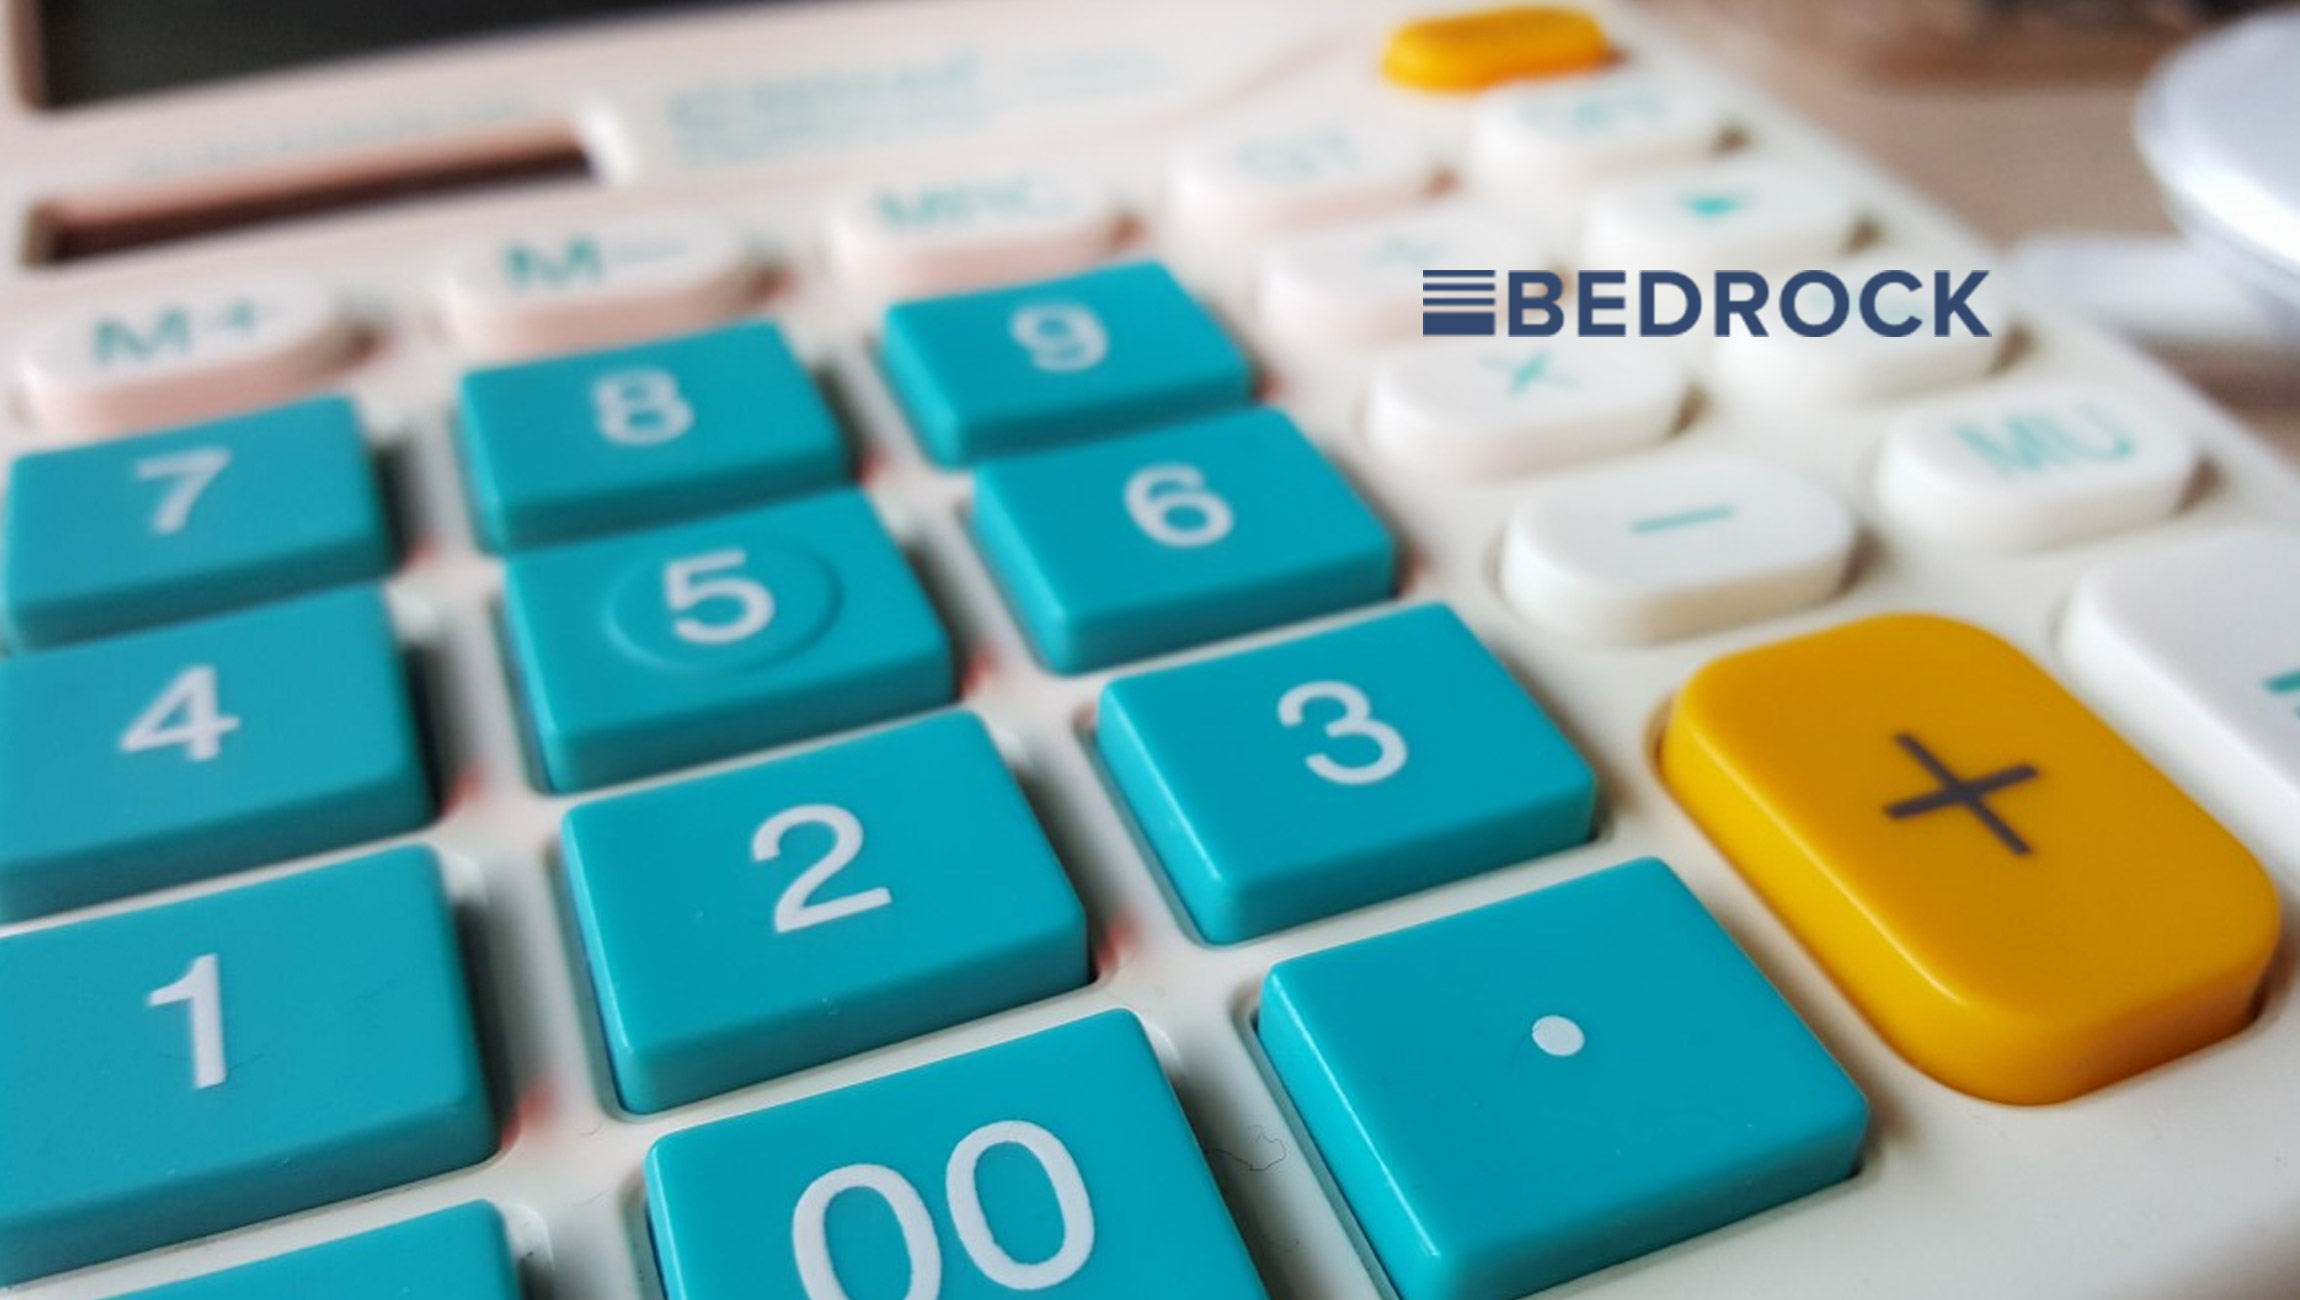 Bedrock Analytics Closes $7.2 Million Funding; Launches Bedrock 2.0